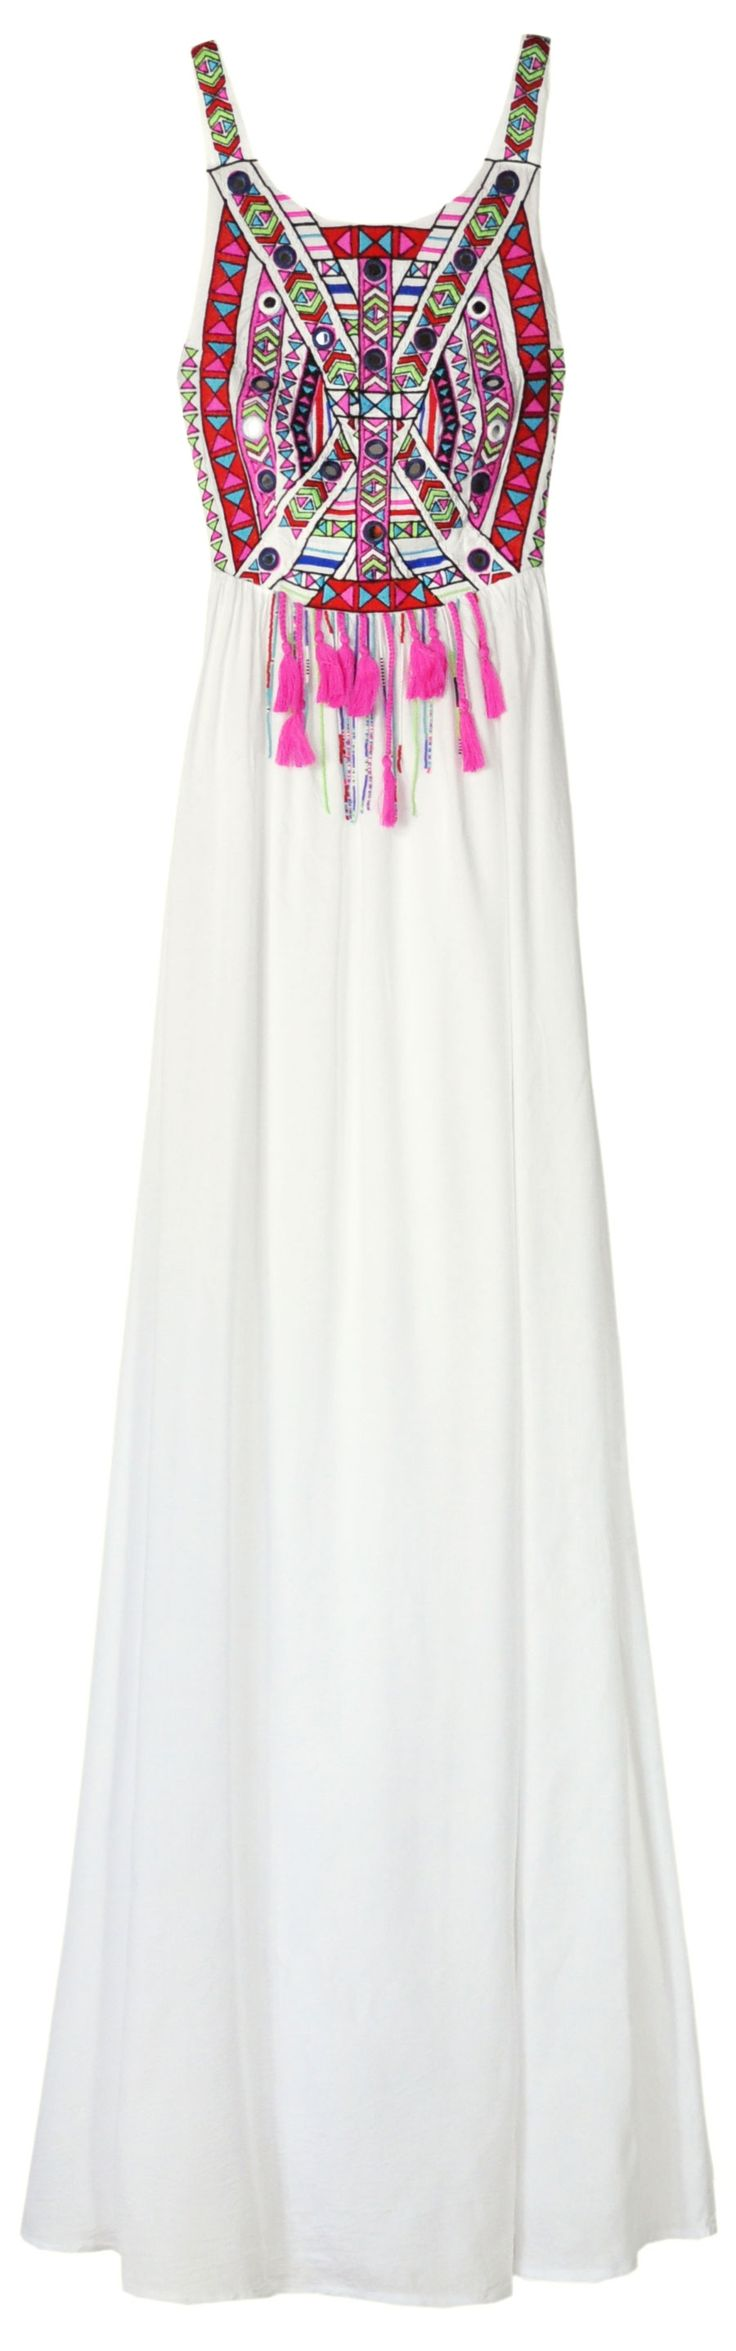 Mara Hoffman Embroidered Mirror Dress…love it and order it today :) youhooo